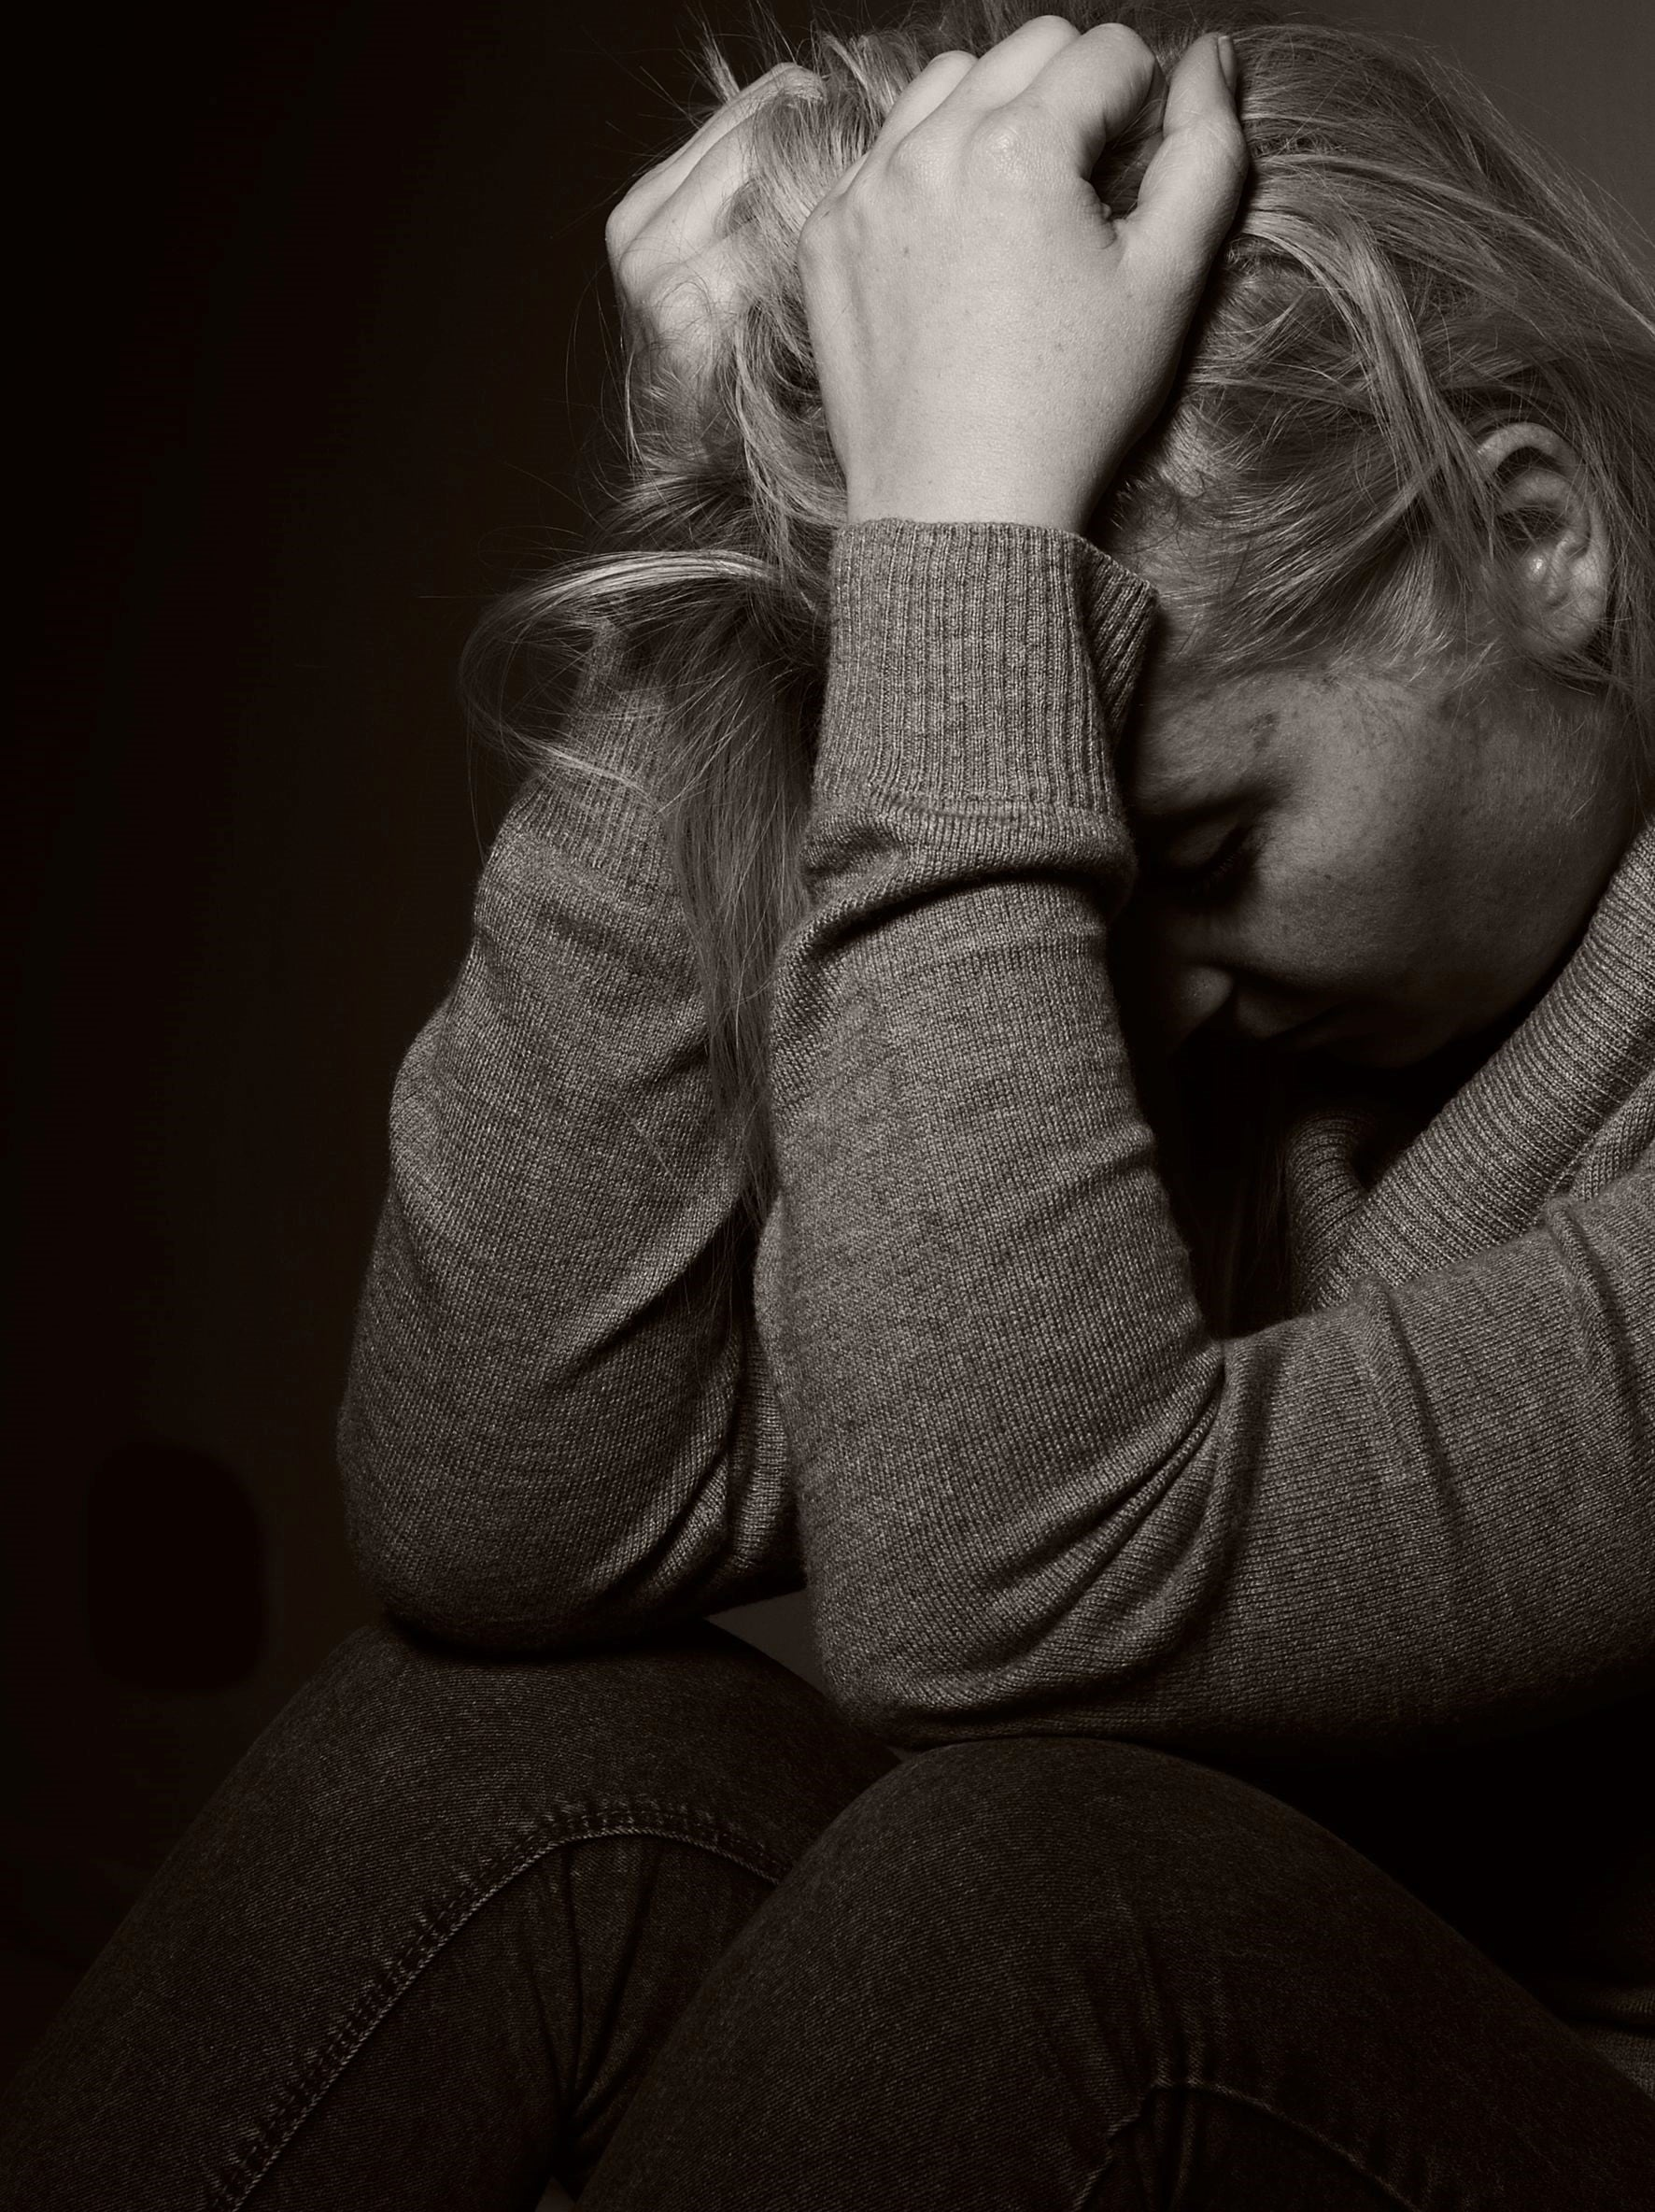 Dealing with the Emotional Problems of Traumatic Brain Injury